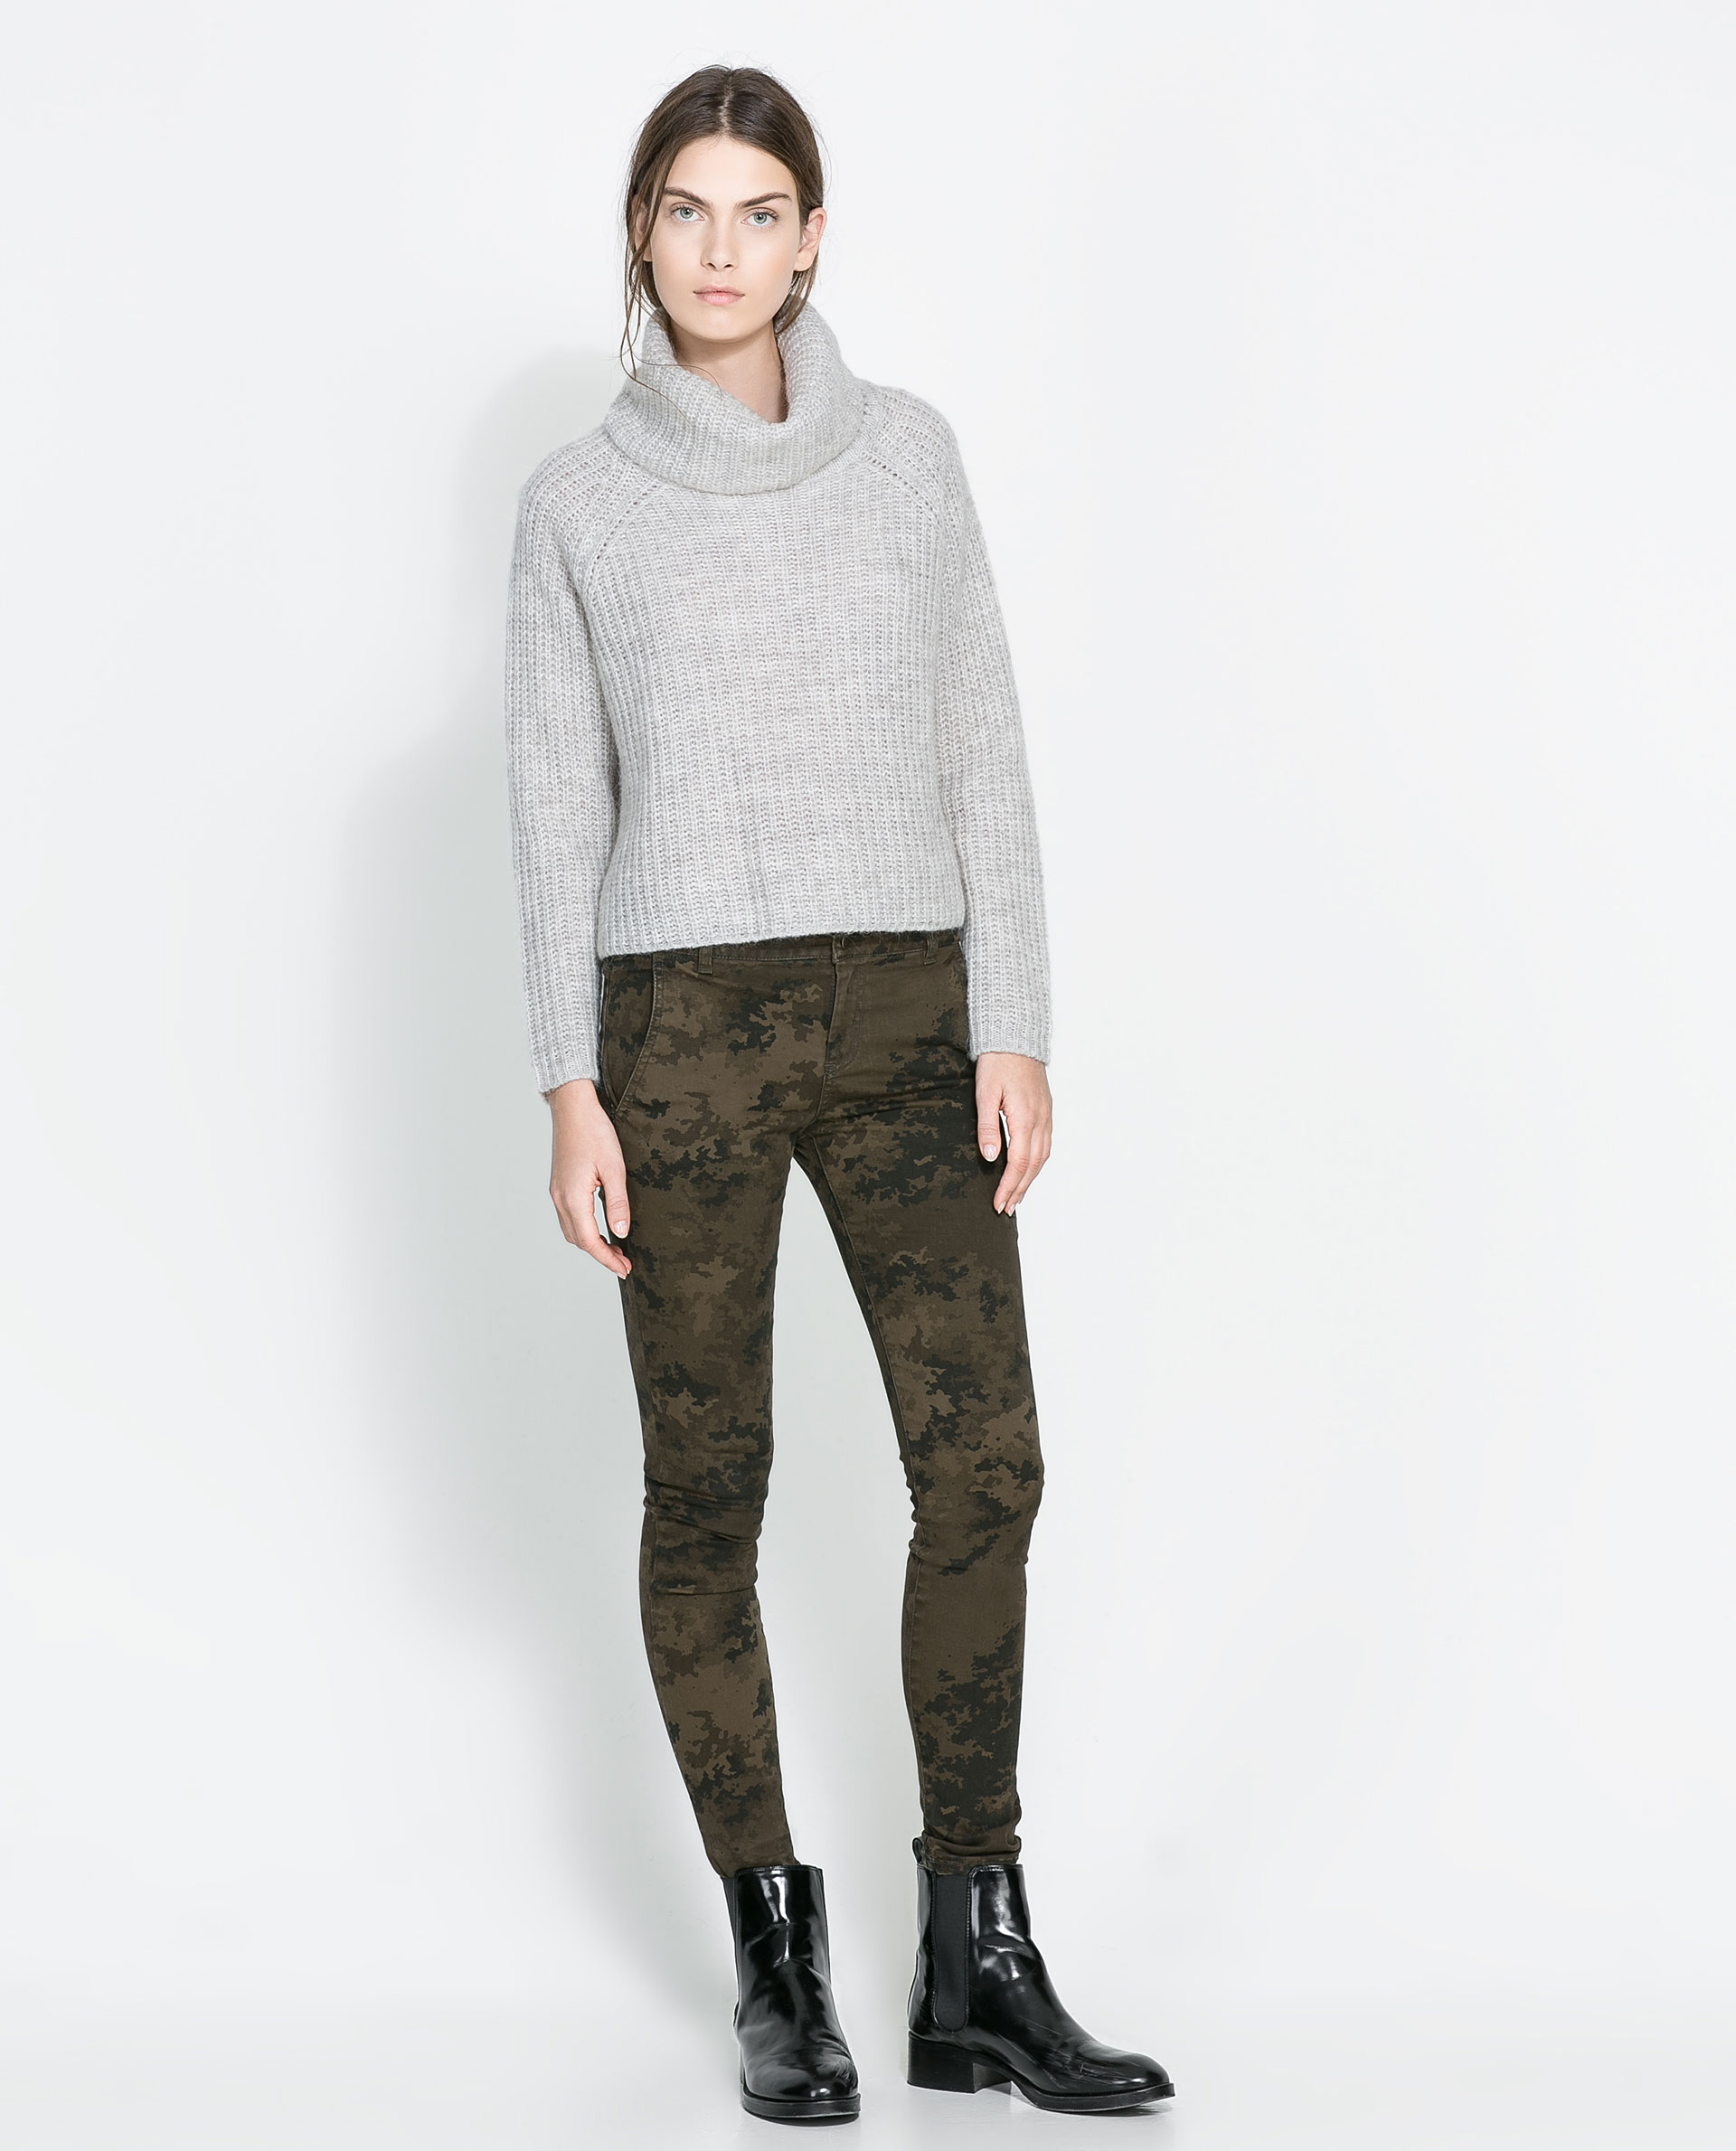 Unique Camouflage Clothing For Women Is Surprisingly Popular Right Now I Recently Caught On To The Ladies Camo Clothing Fashion Trend And After Reading This So Will You In Addition To Being Trendy Camouflage Clothing For Women Can Be